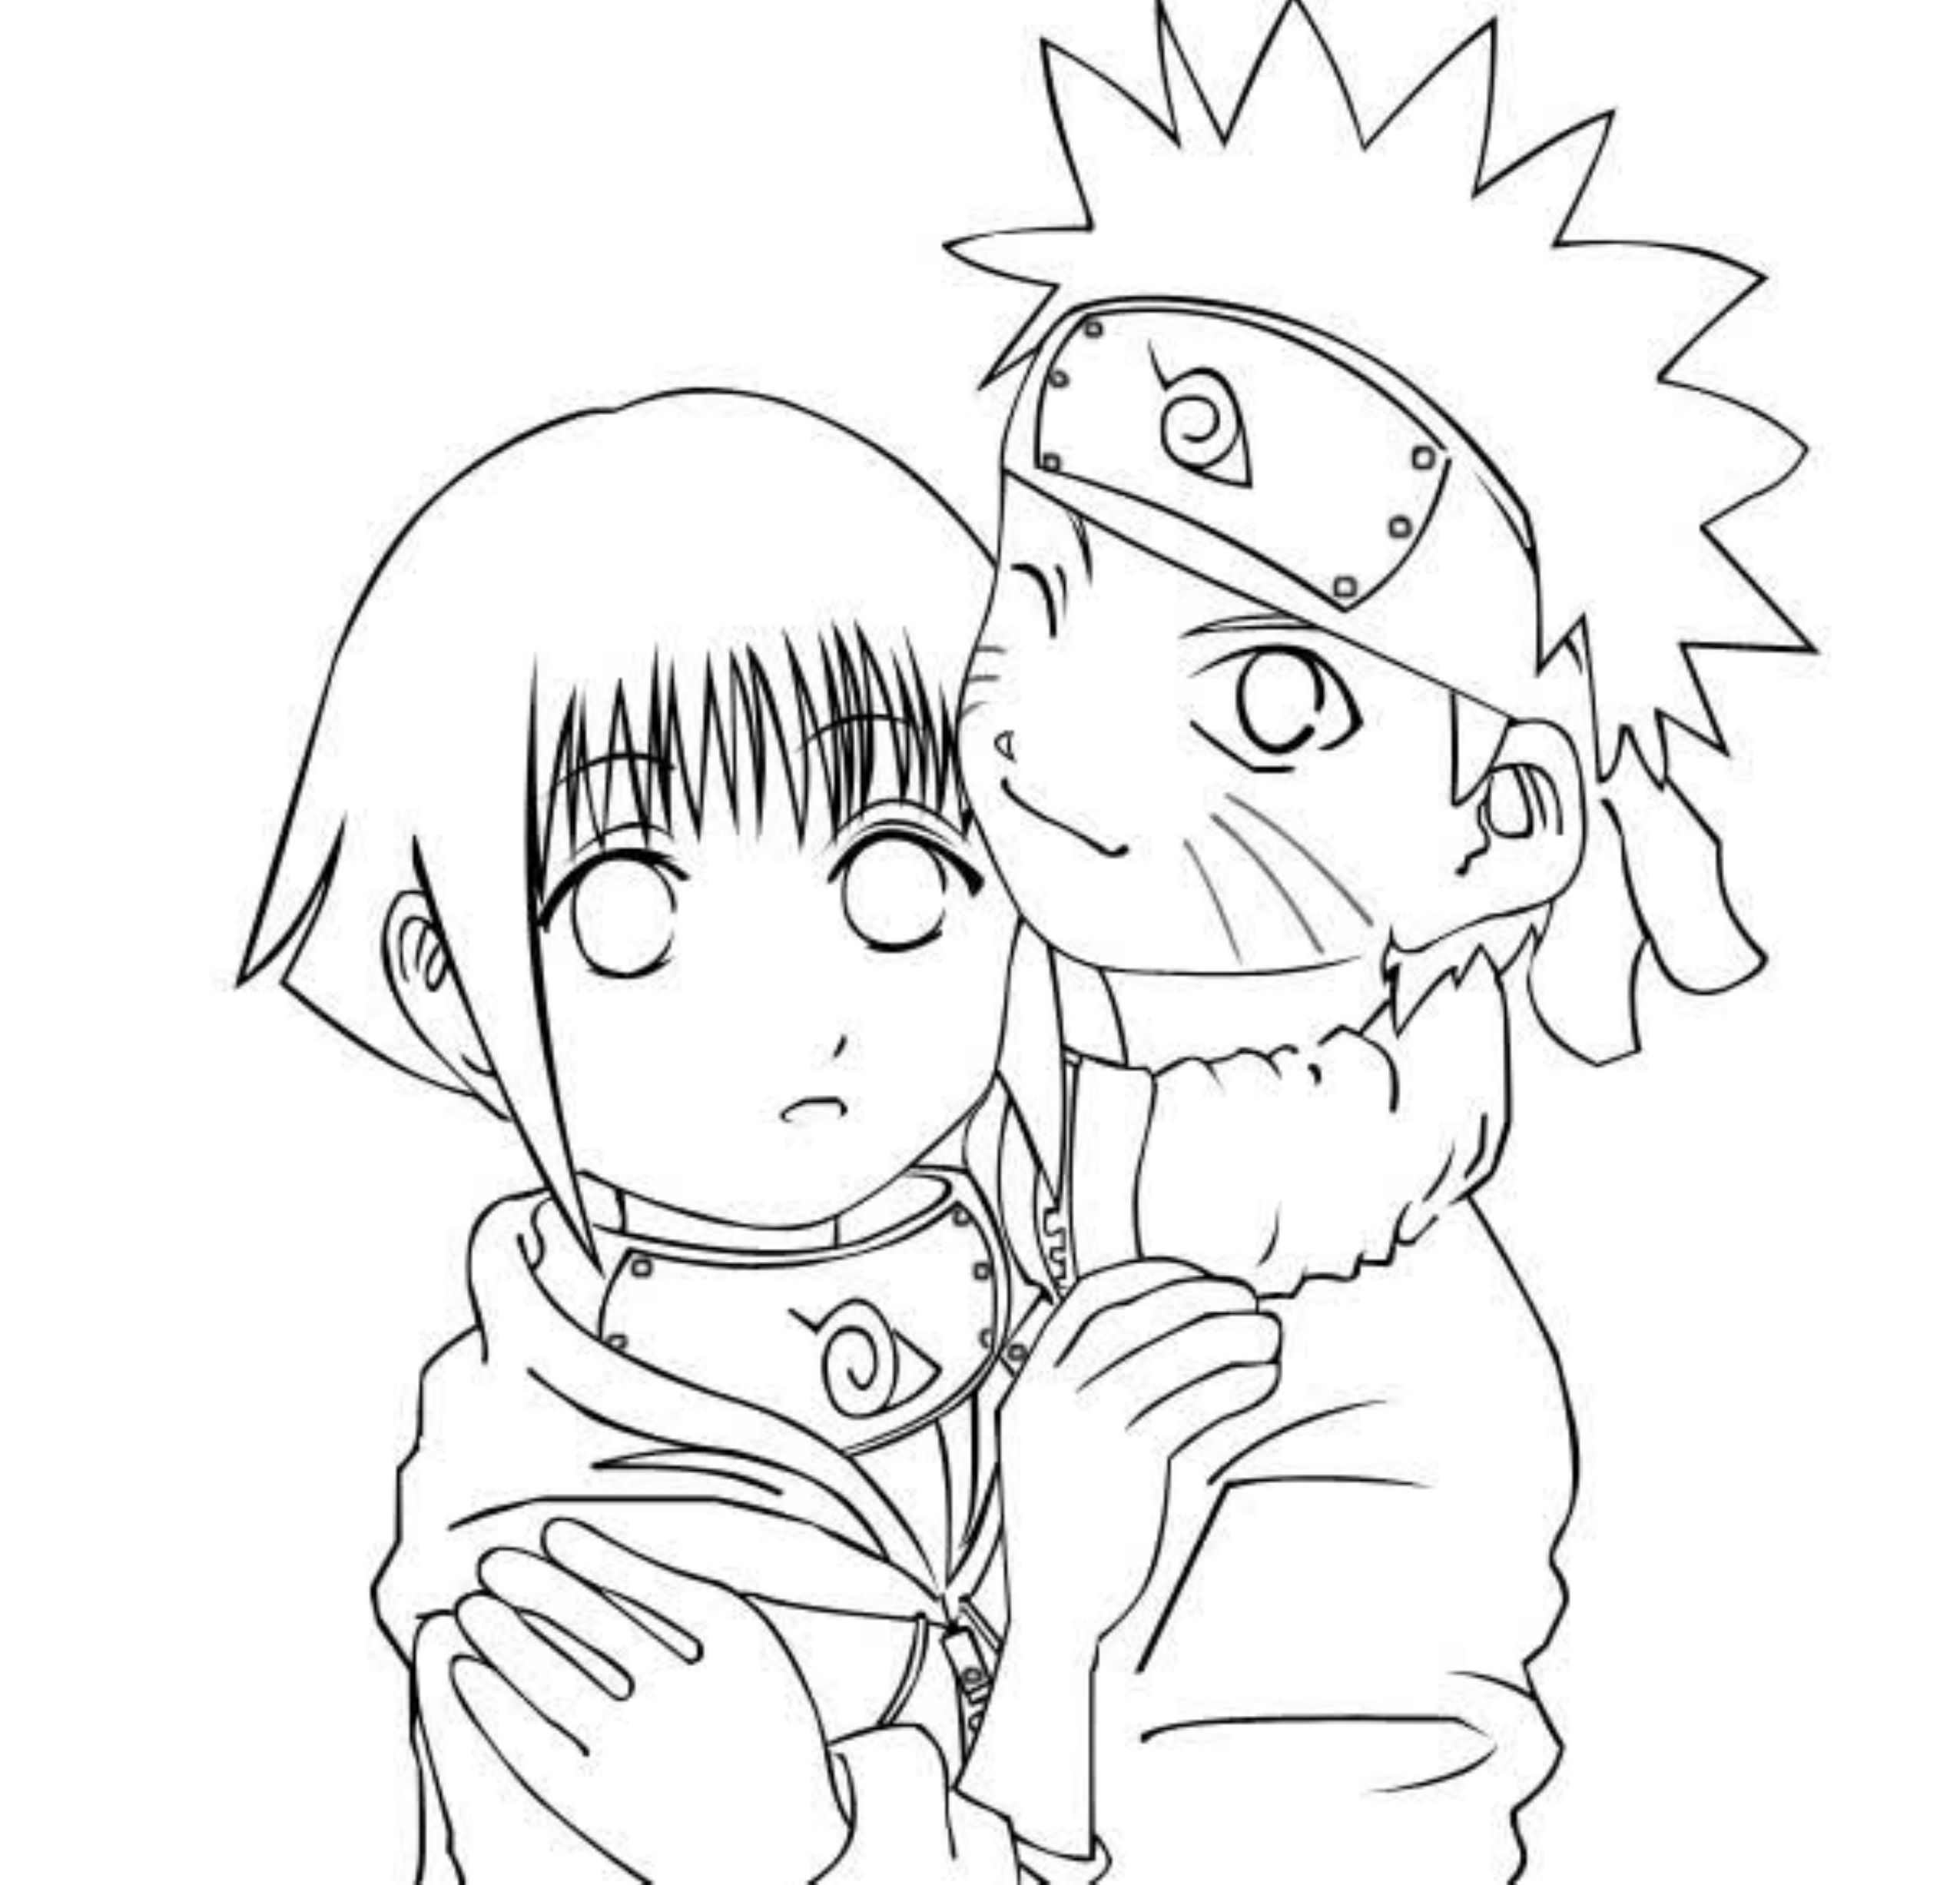 naruto shippuden coloring pages to download and print for free